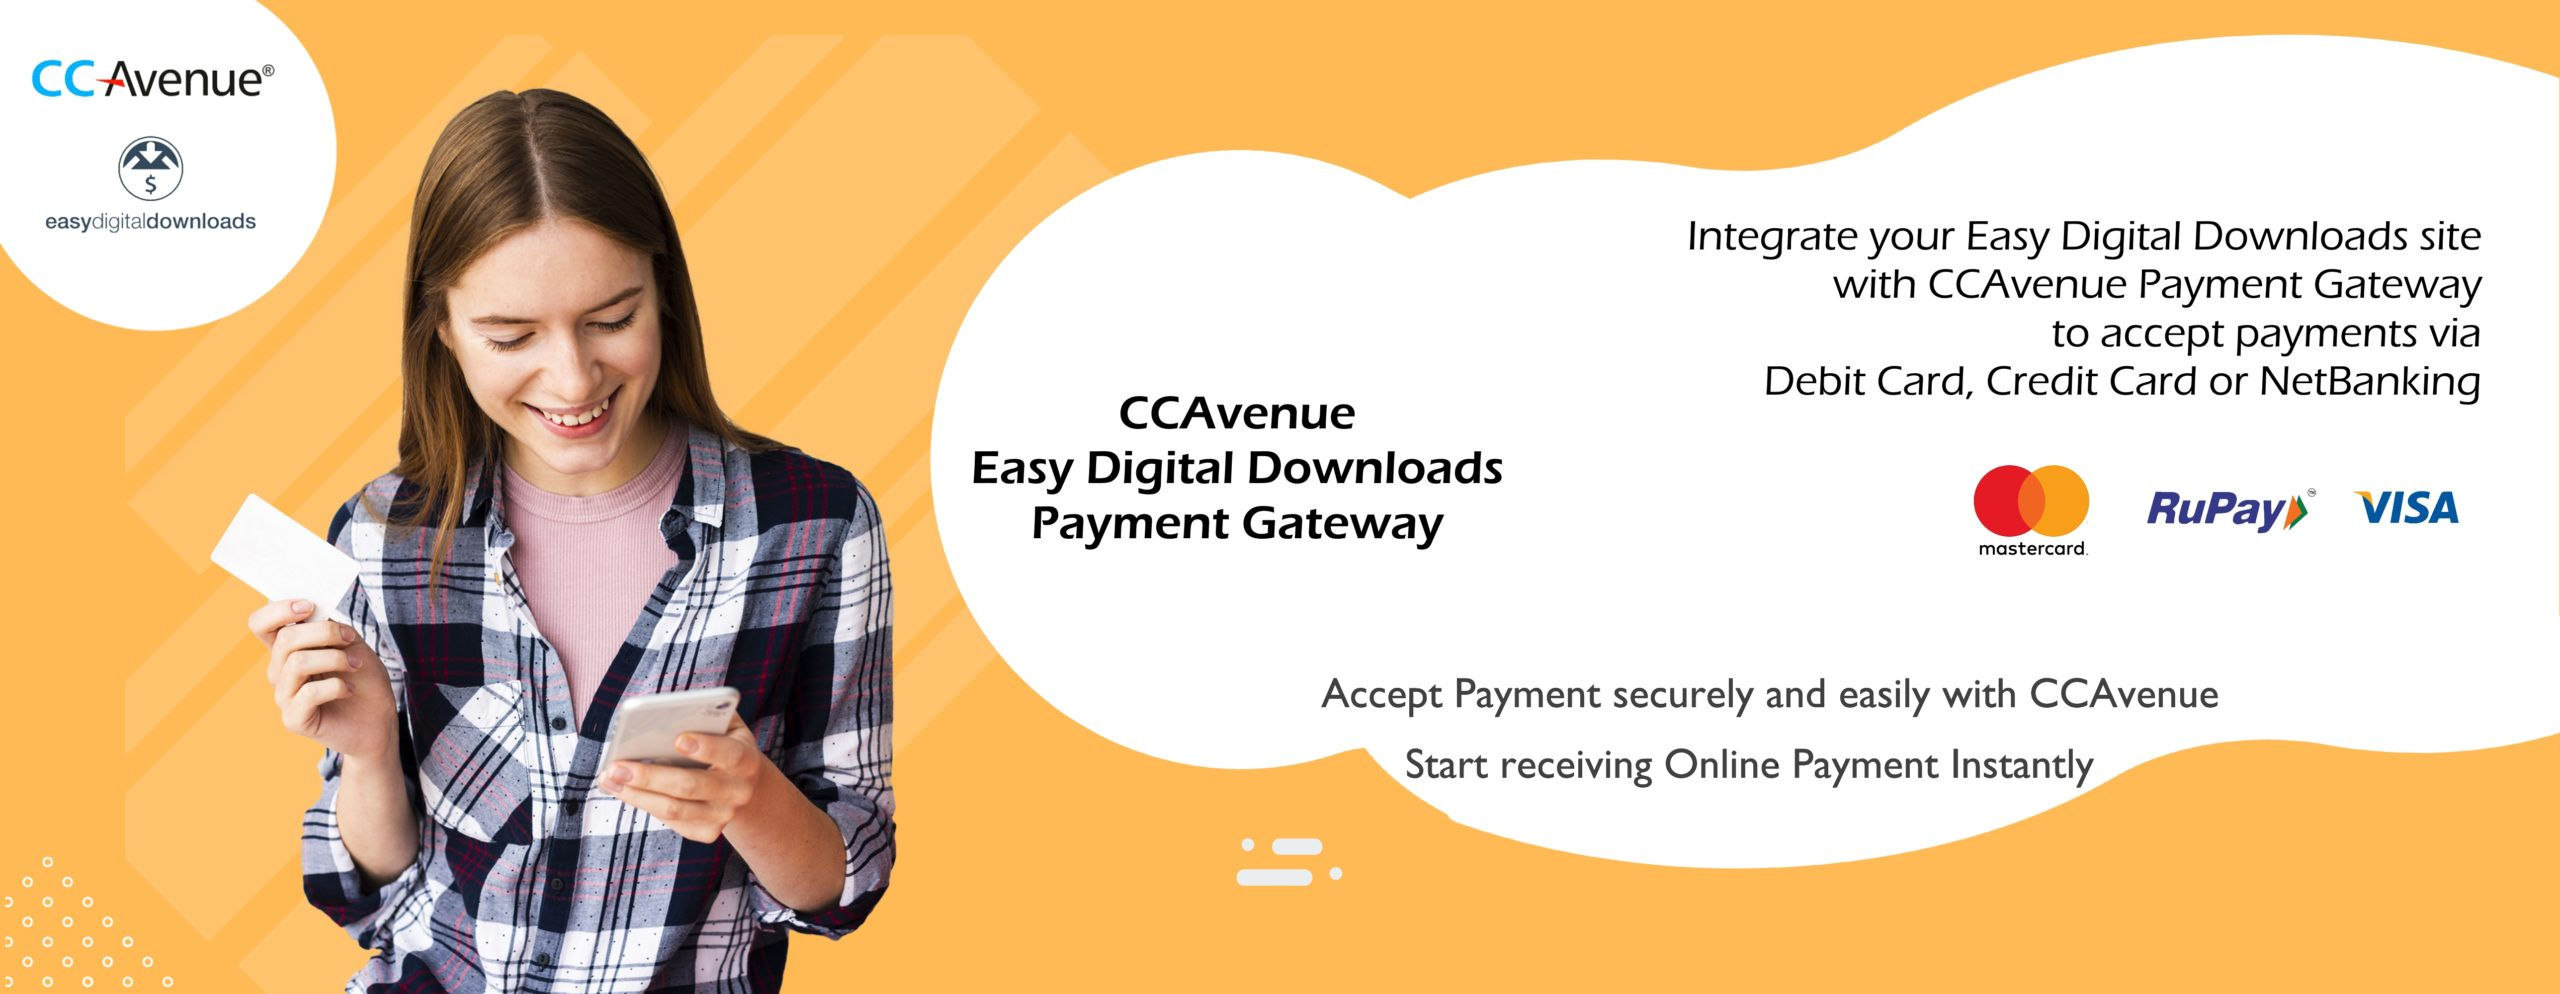 CCAvenue – Easy Digital Downloads Payment Gateway